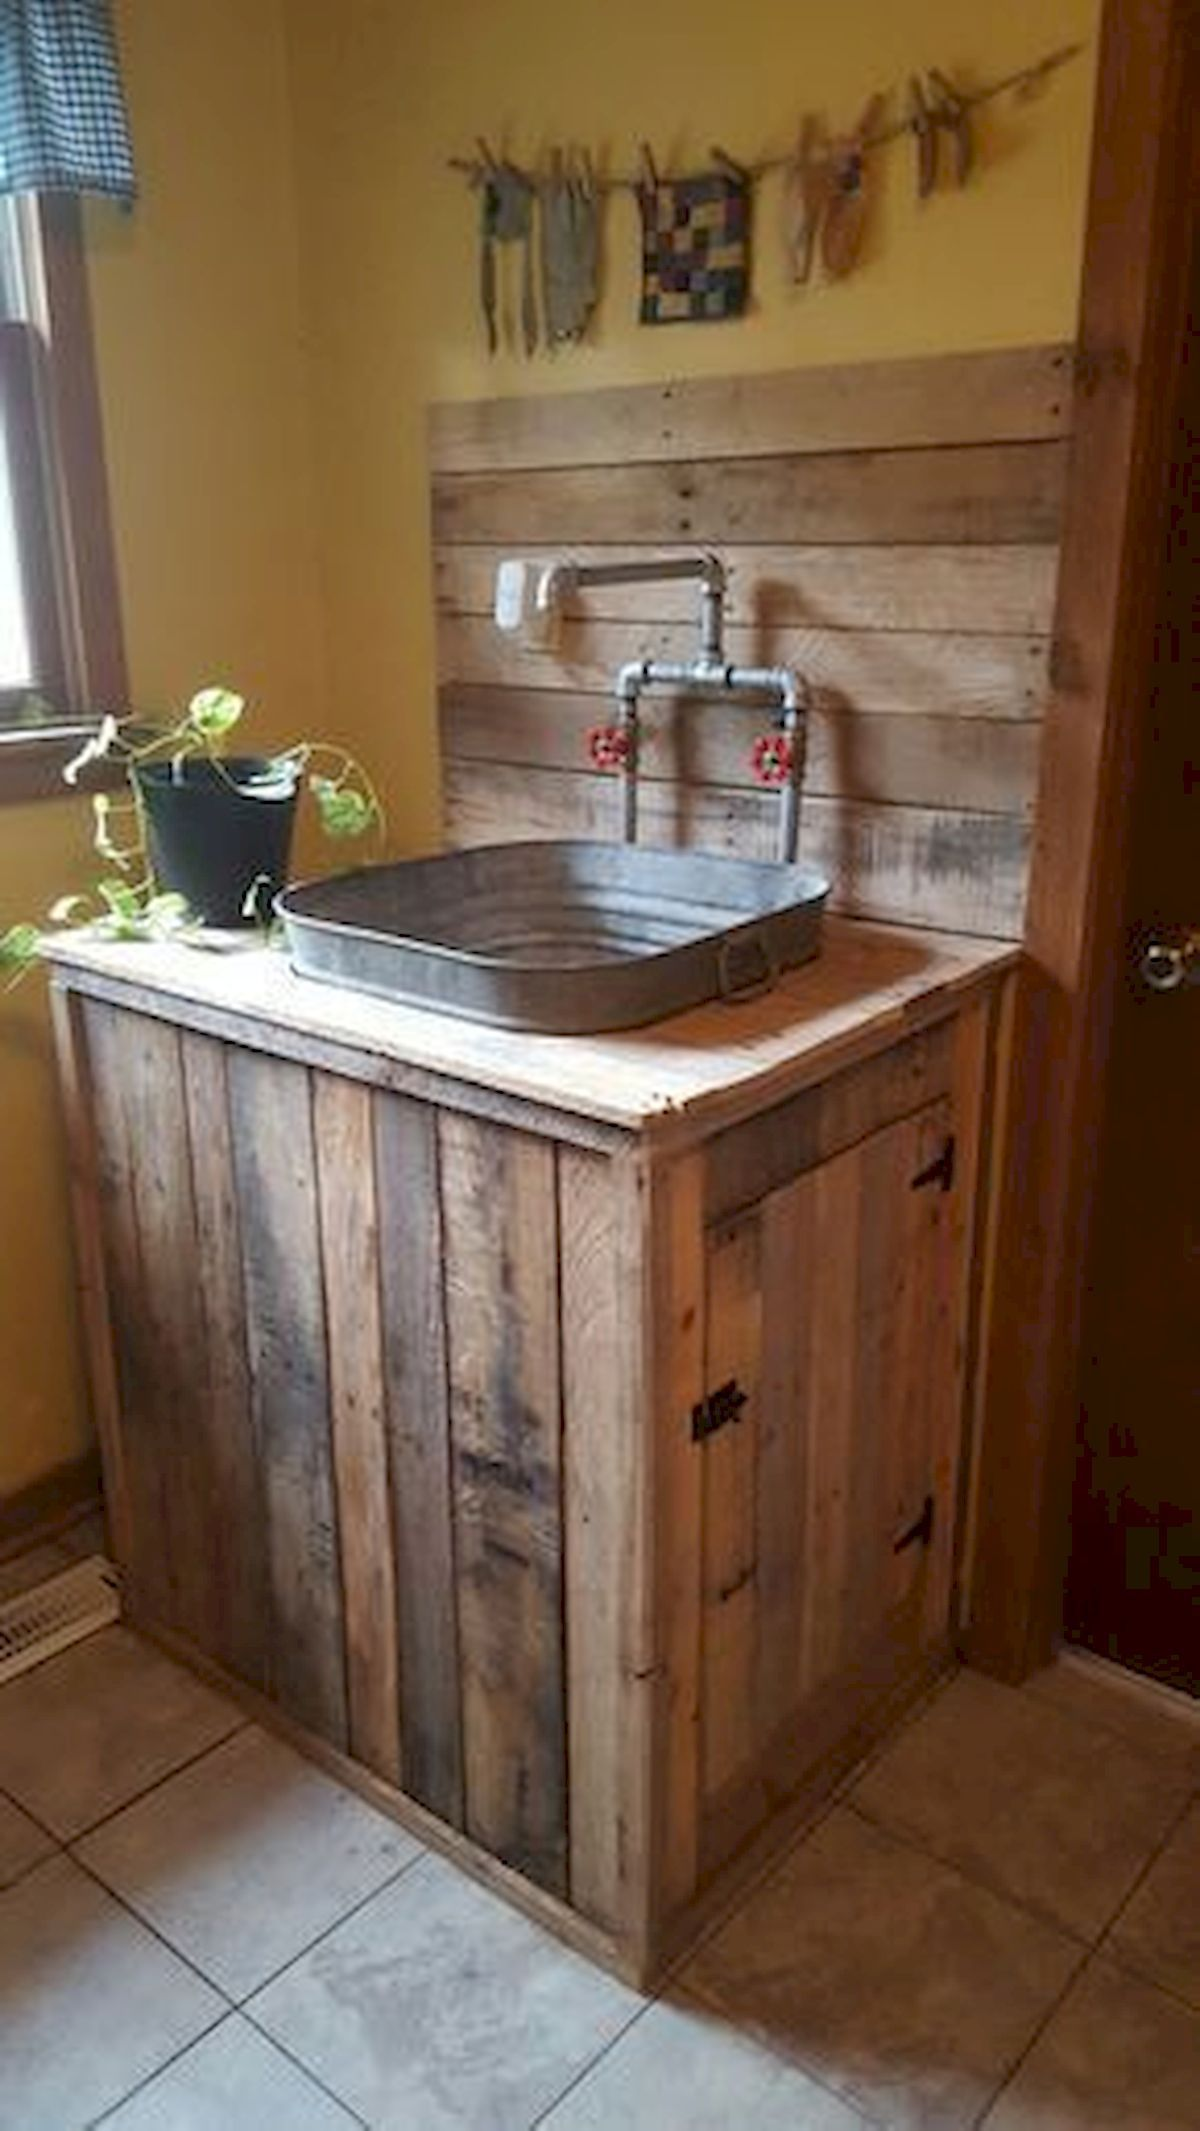 Try These Easy Rustic Diy Kitchen Projects Hen It Comes To Furnishing Will You Go F In 2020 Pallet Kitchen Cabinets Rustic Kitchen Cabinets Rustic Bathroom Designs